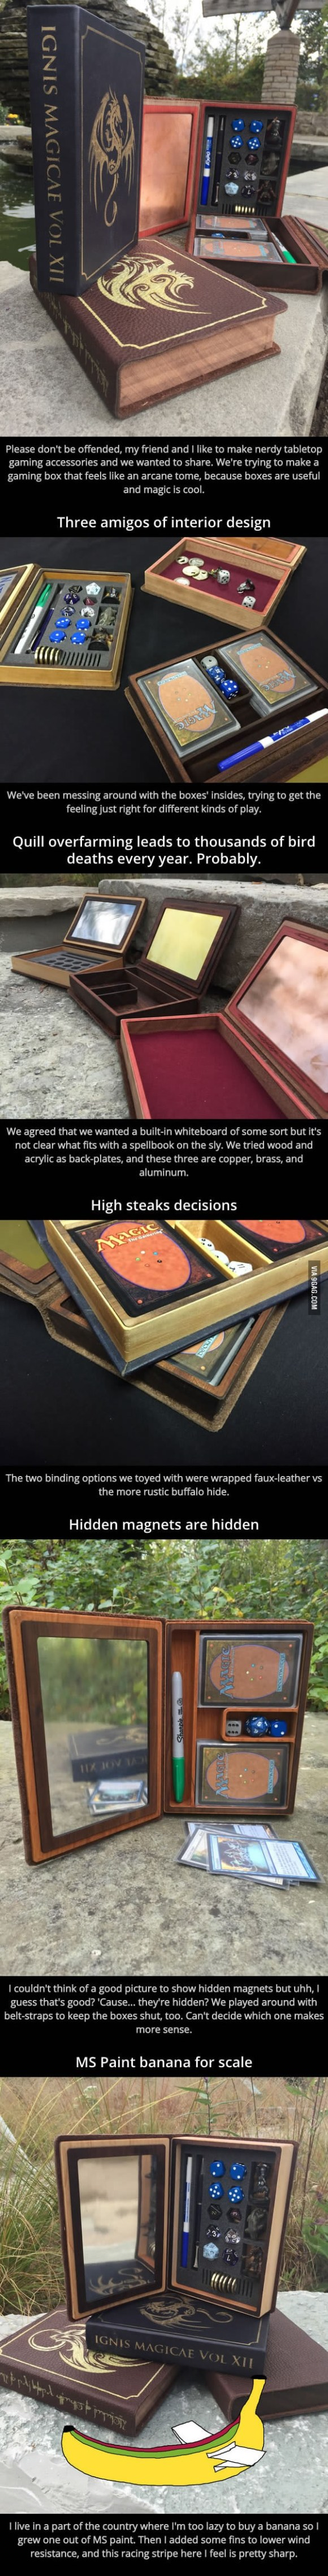 They made some spellbook-styled gaming boxes